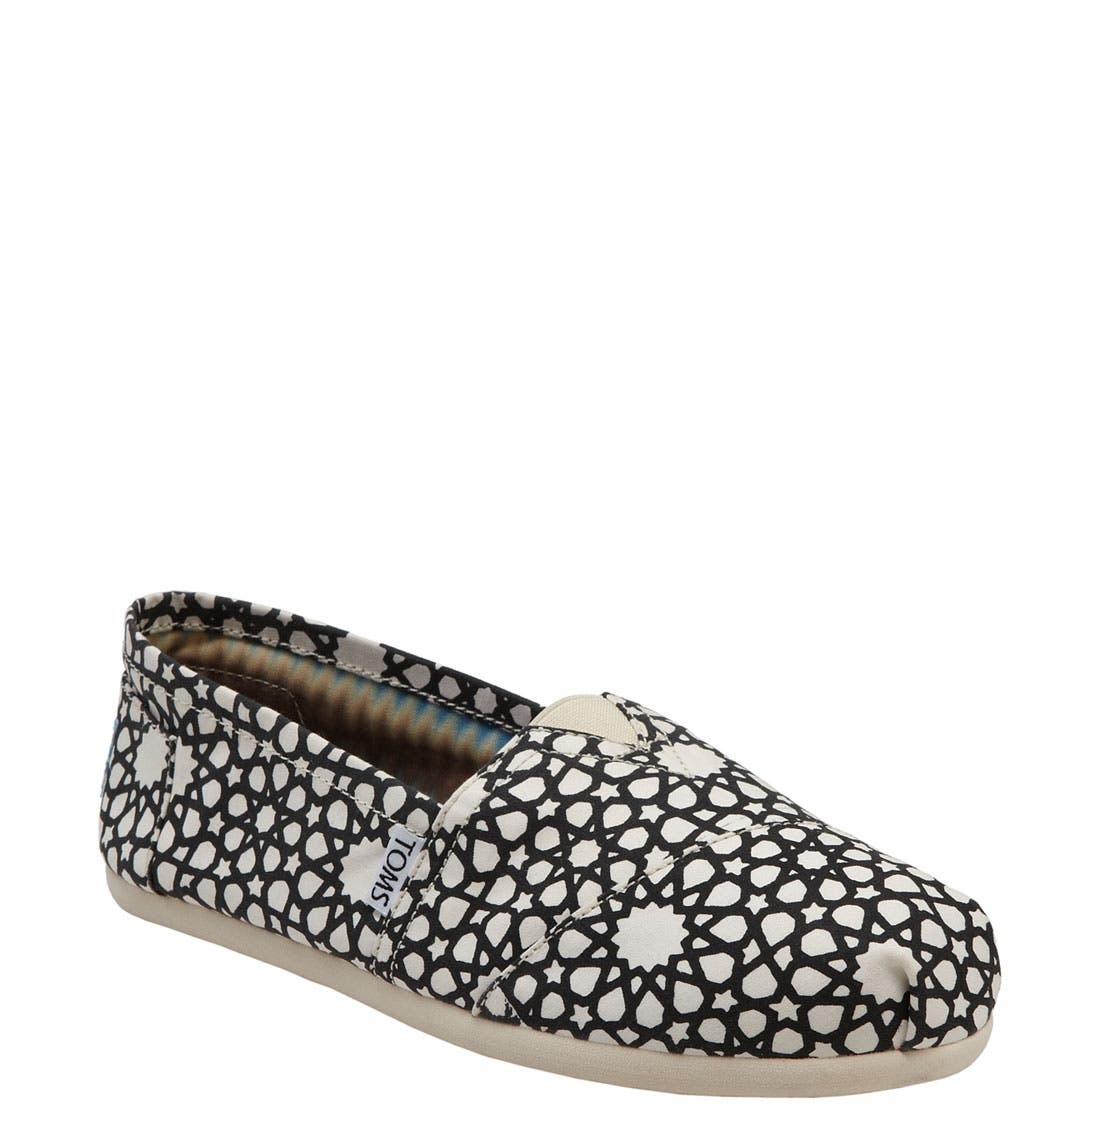 Alternate Image 1 Selected - TOMS 'Cultural Anthropology' Slip-On (Women)